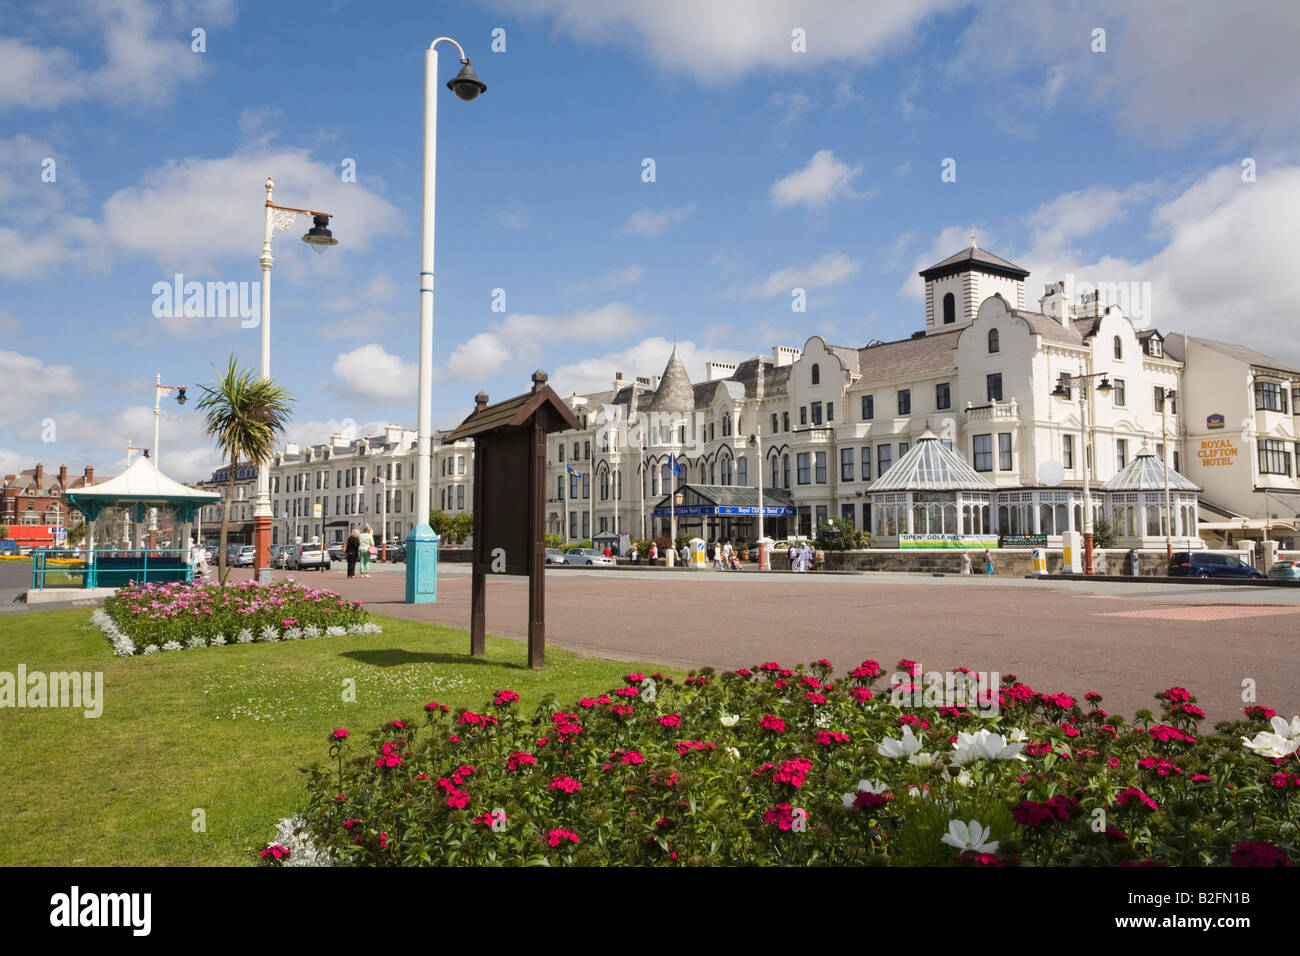 Seafront gardens on promenade and Victorian hotels in classic seaside resort in summer. Southport Merseyside England - Stock Image